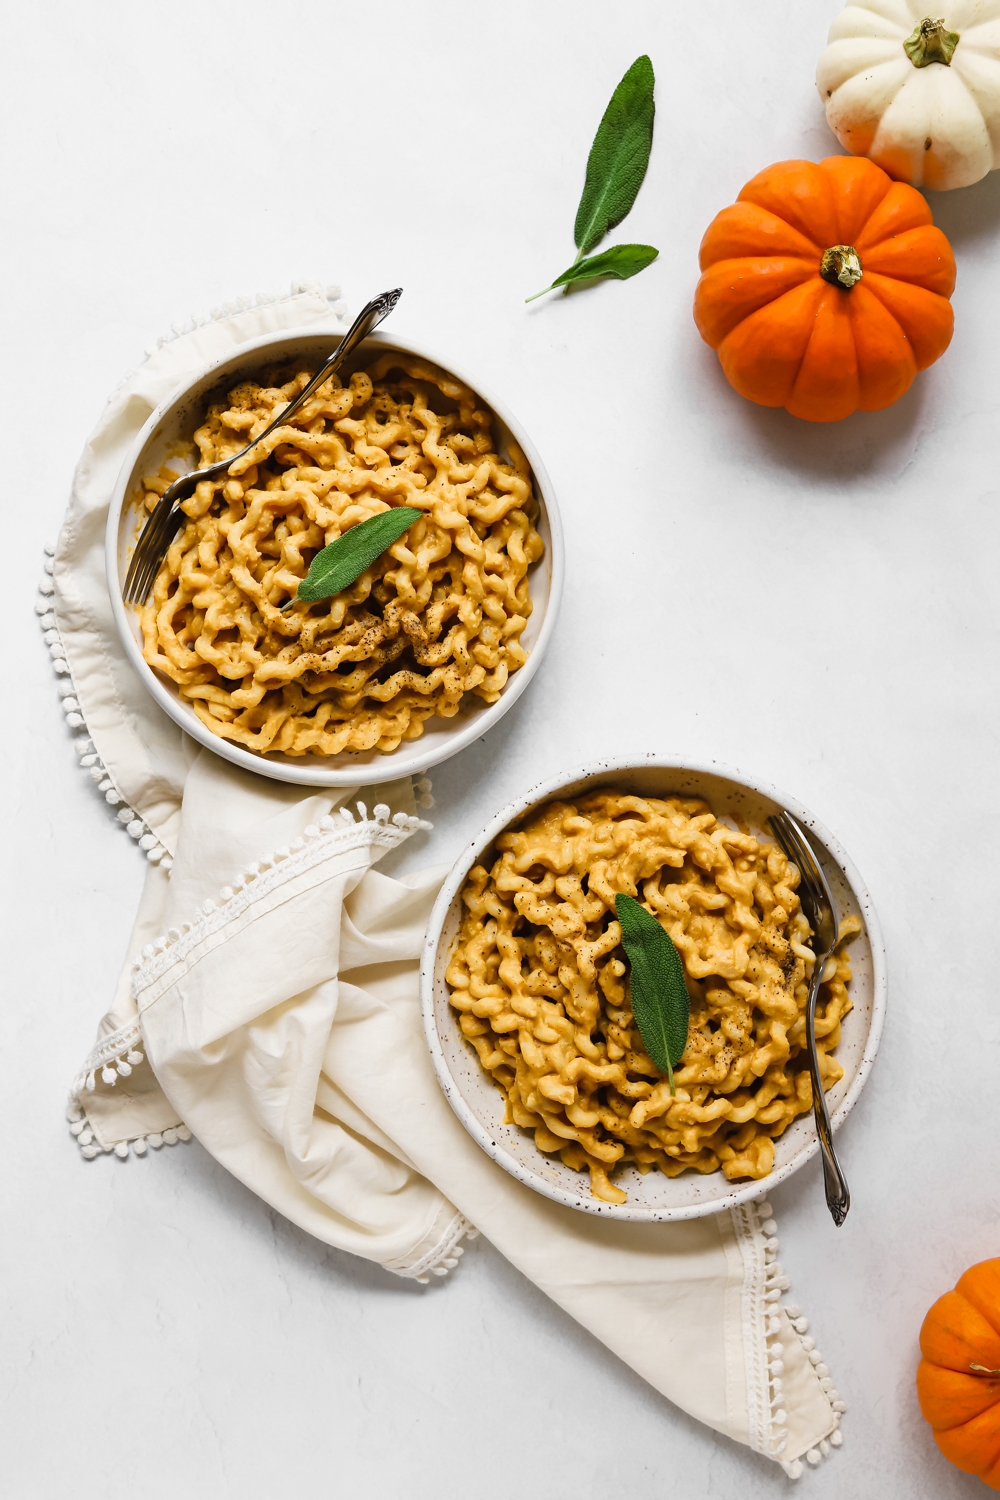 Two bowls of pumpkin miso pasta surrounded by sage leaves and mini orange and white pumpkins.